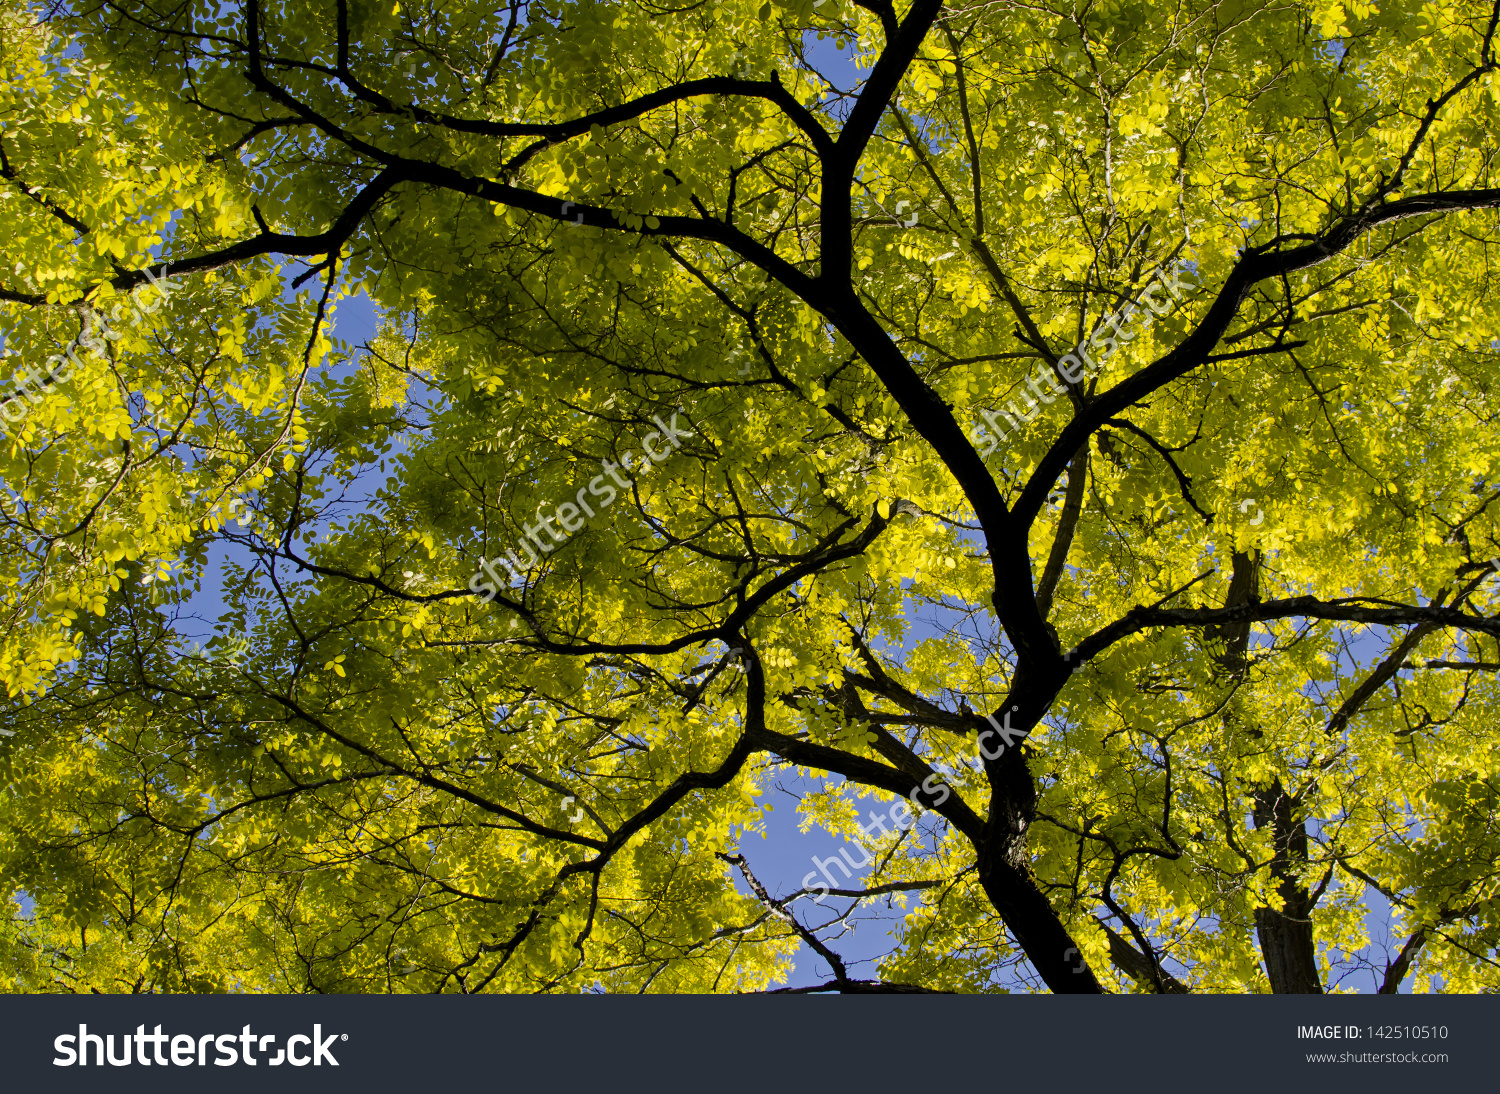 Golden Leaves Branches Golden False Acacia Stock Photo 142510510.